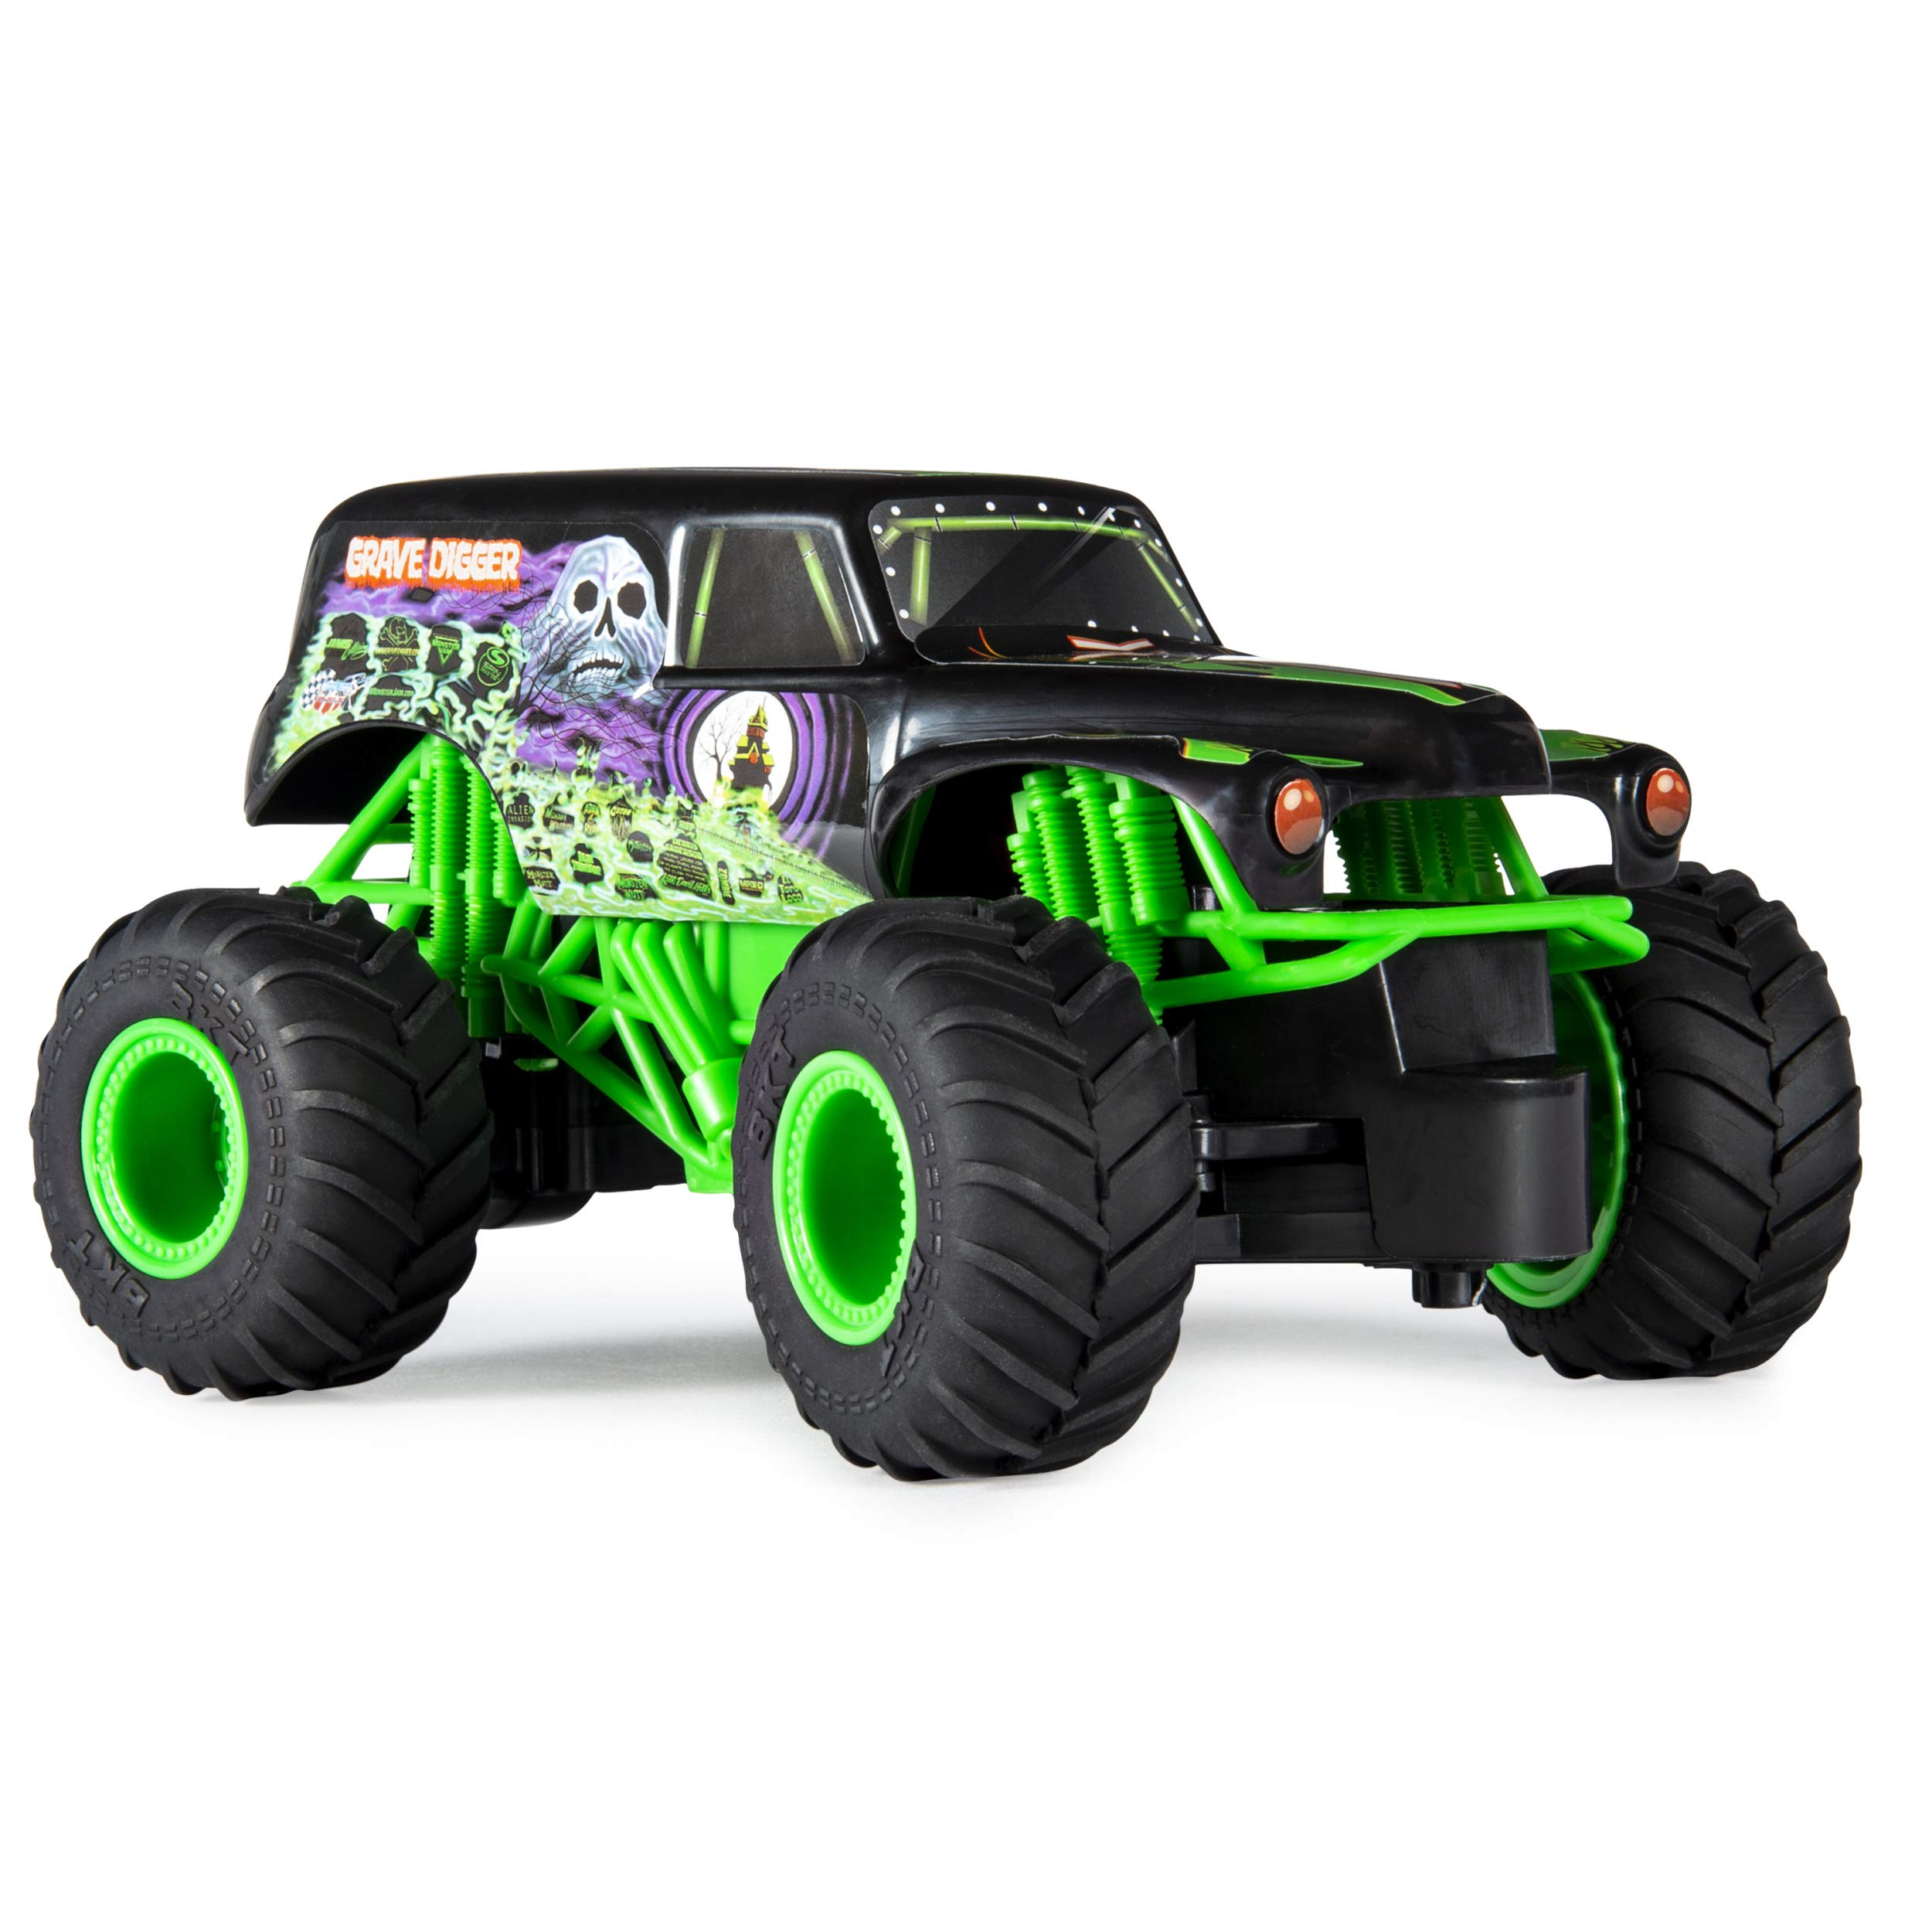 Monster Jam Official Grave Digger Remote Control Monster Truck, 1:24 Scale, 2.4 GHz, for Ages 4 and Up by Monster Jam (Image #5)